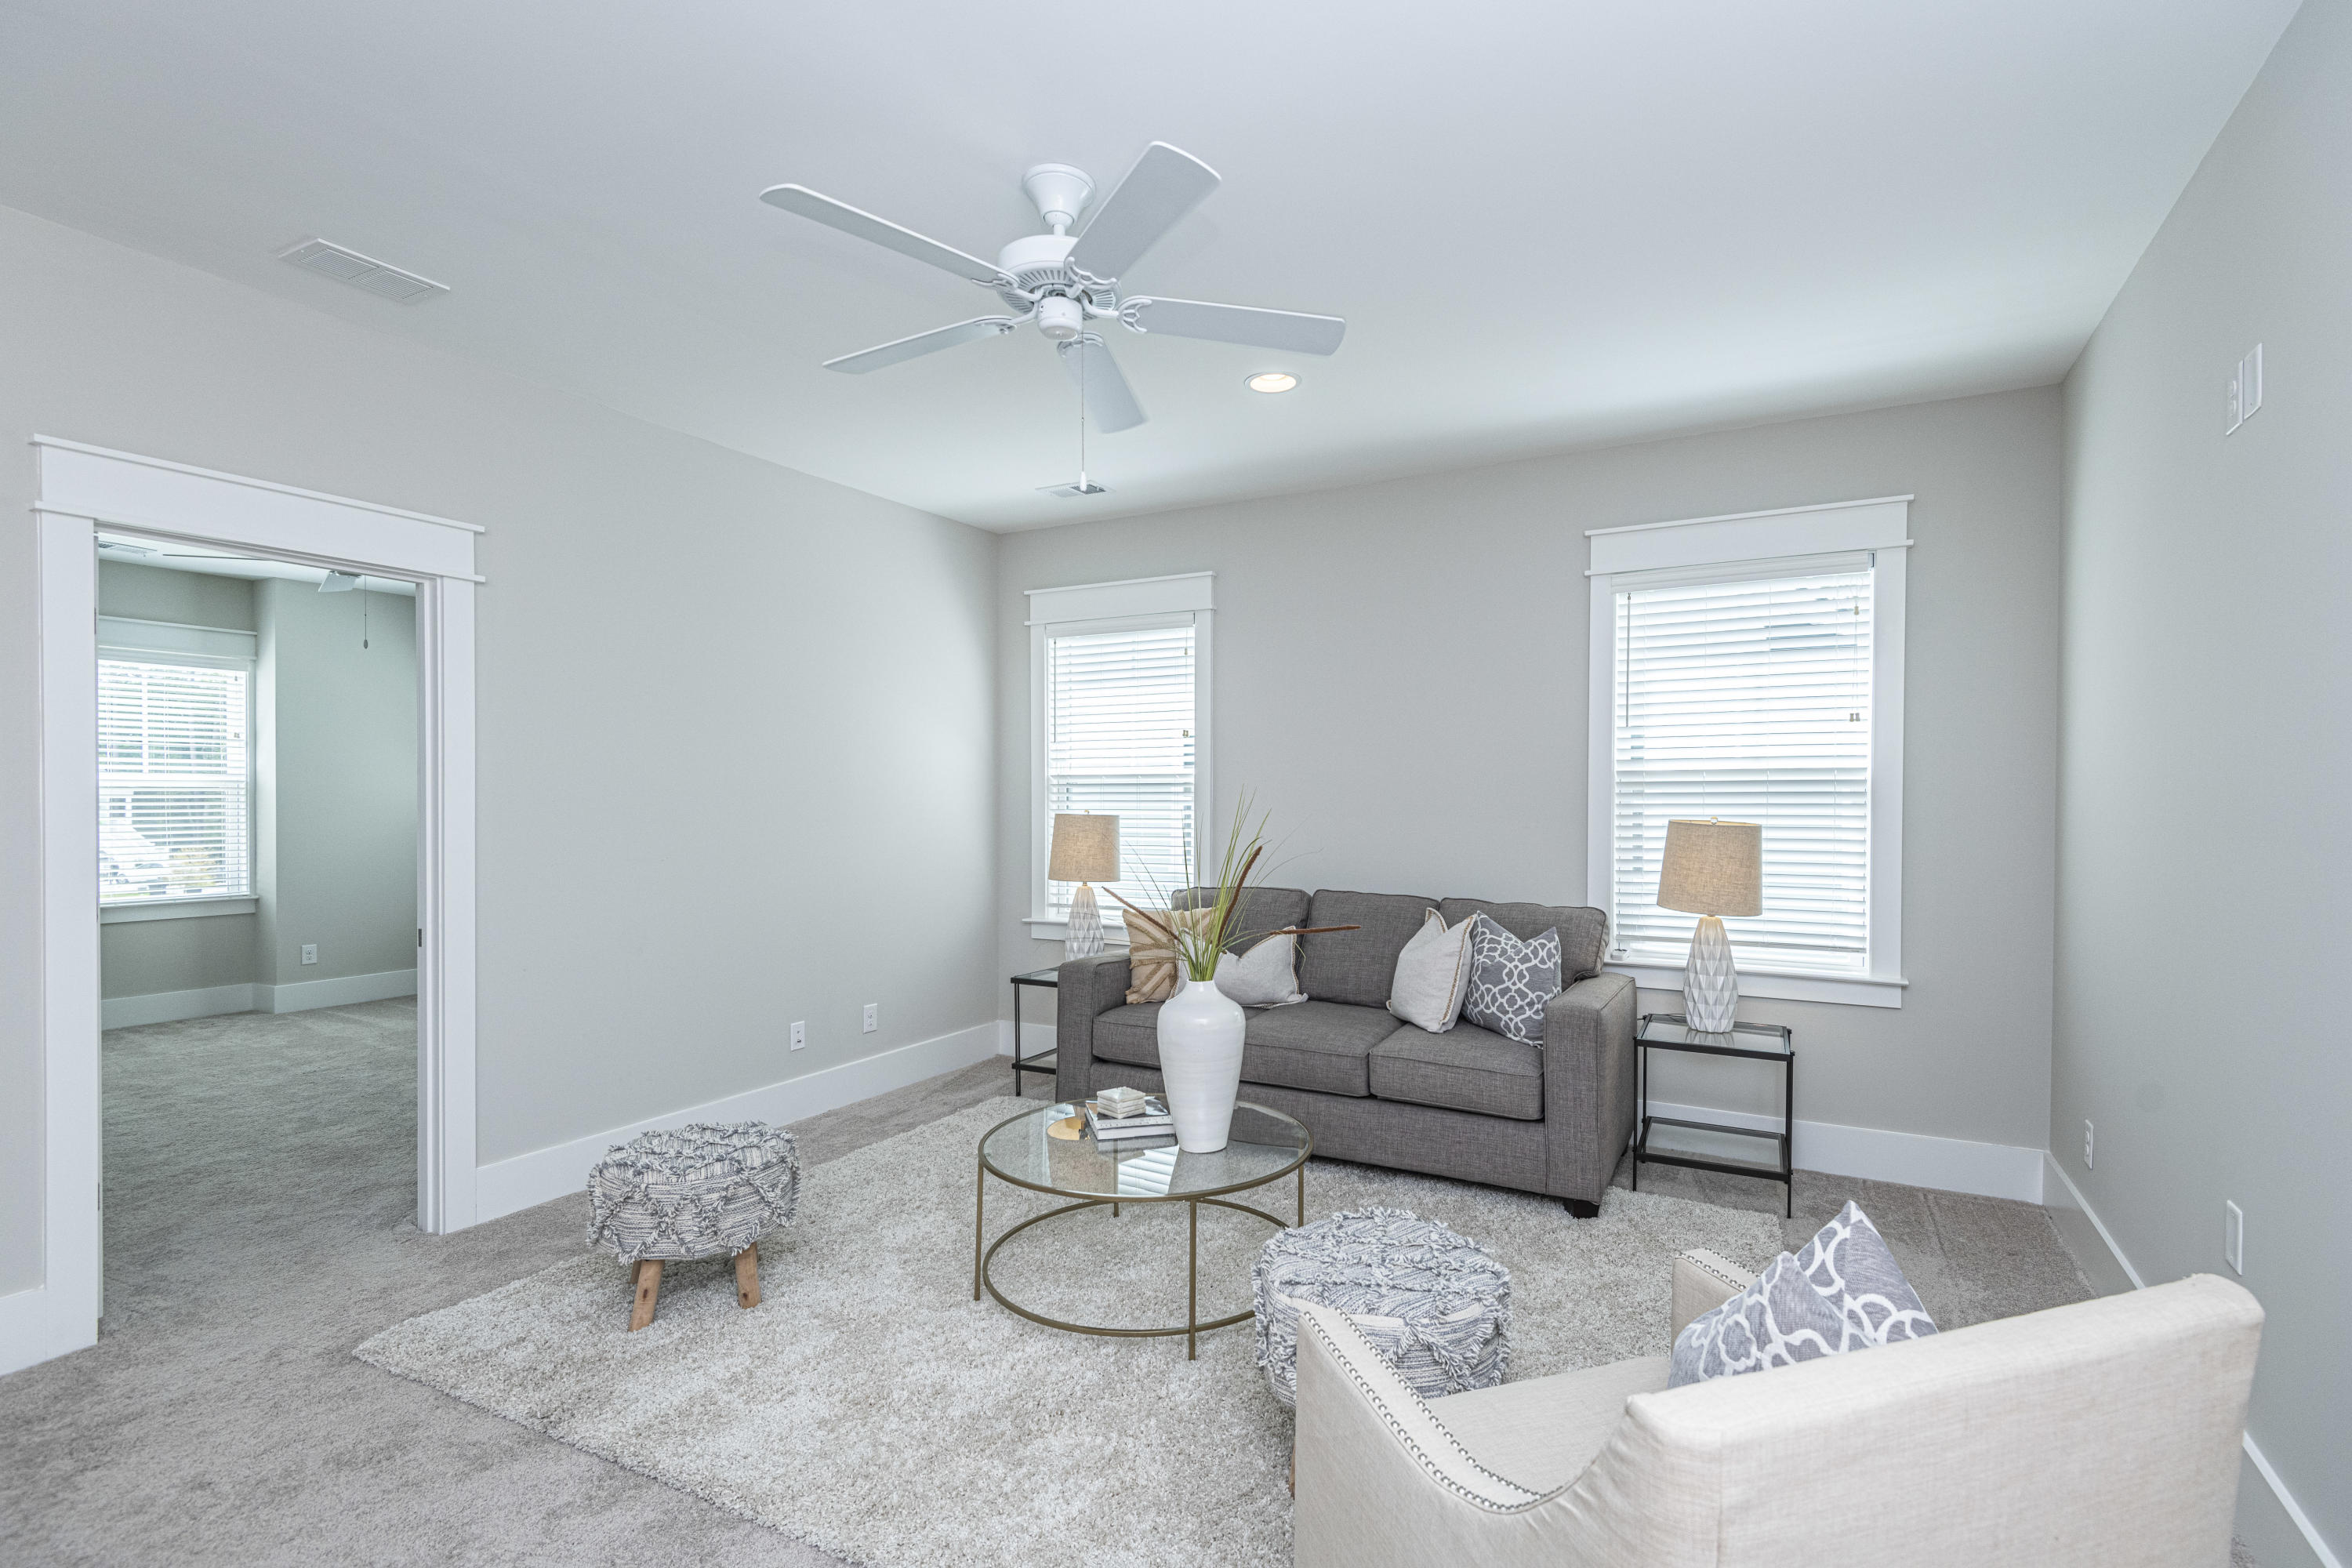 Dunes West Homes For Sale - 2854 Dragonfly Circle, Mount Pleasant, SC - 20